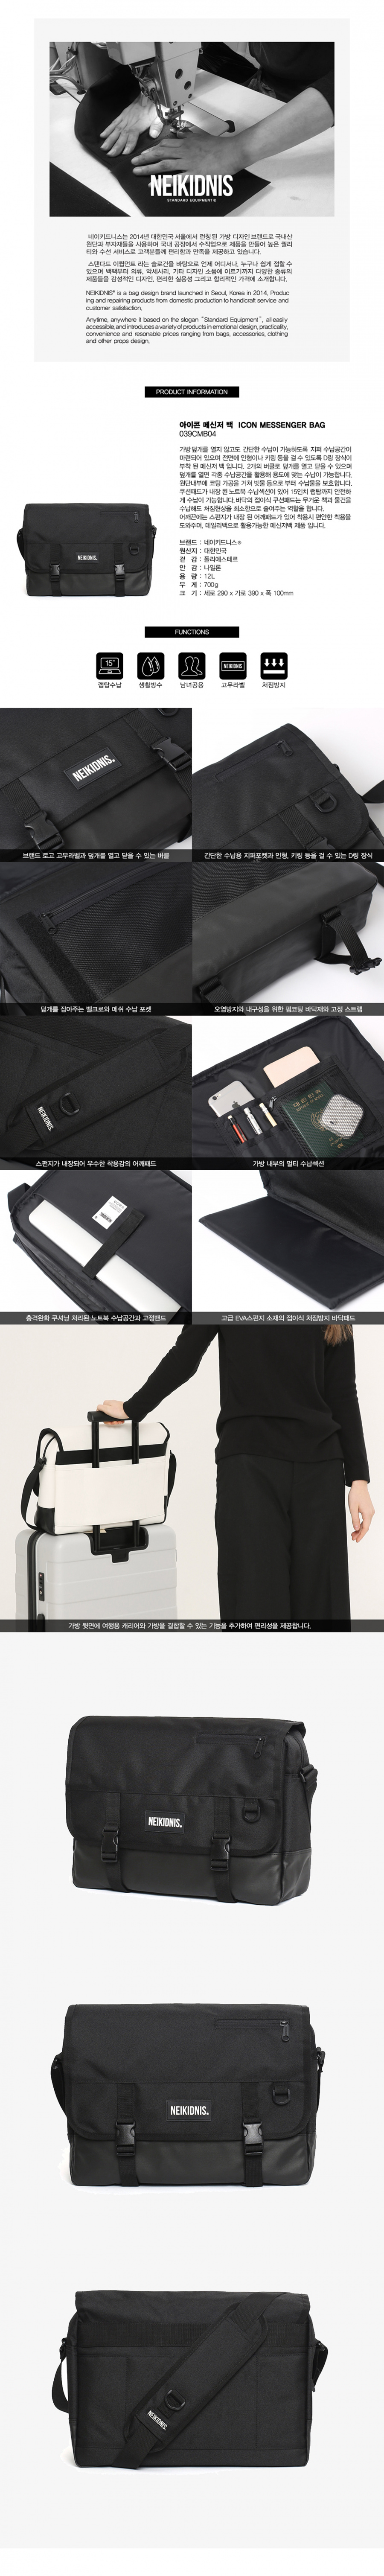 네이키드니스(NEIKIDNIS) ICON MESSENGER BAG / BLACK